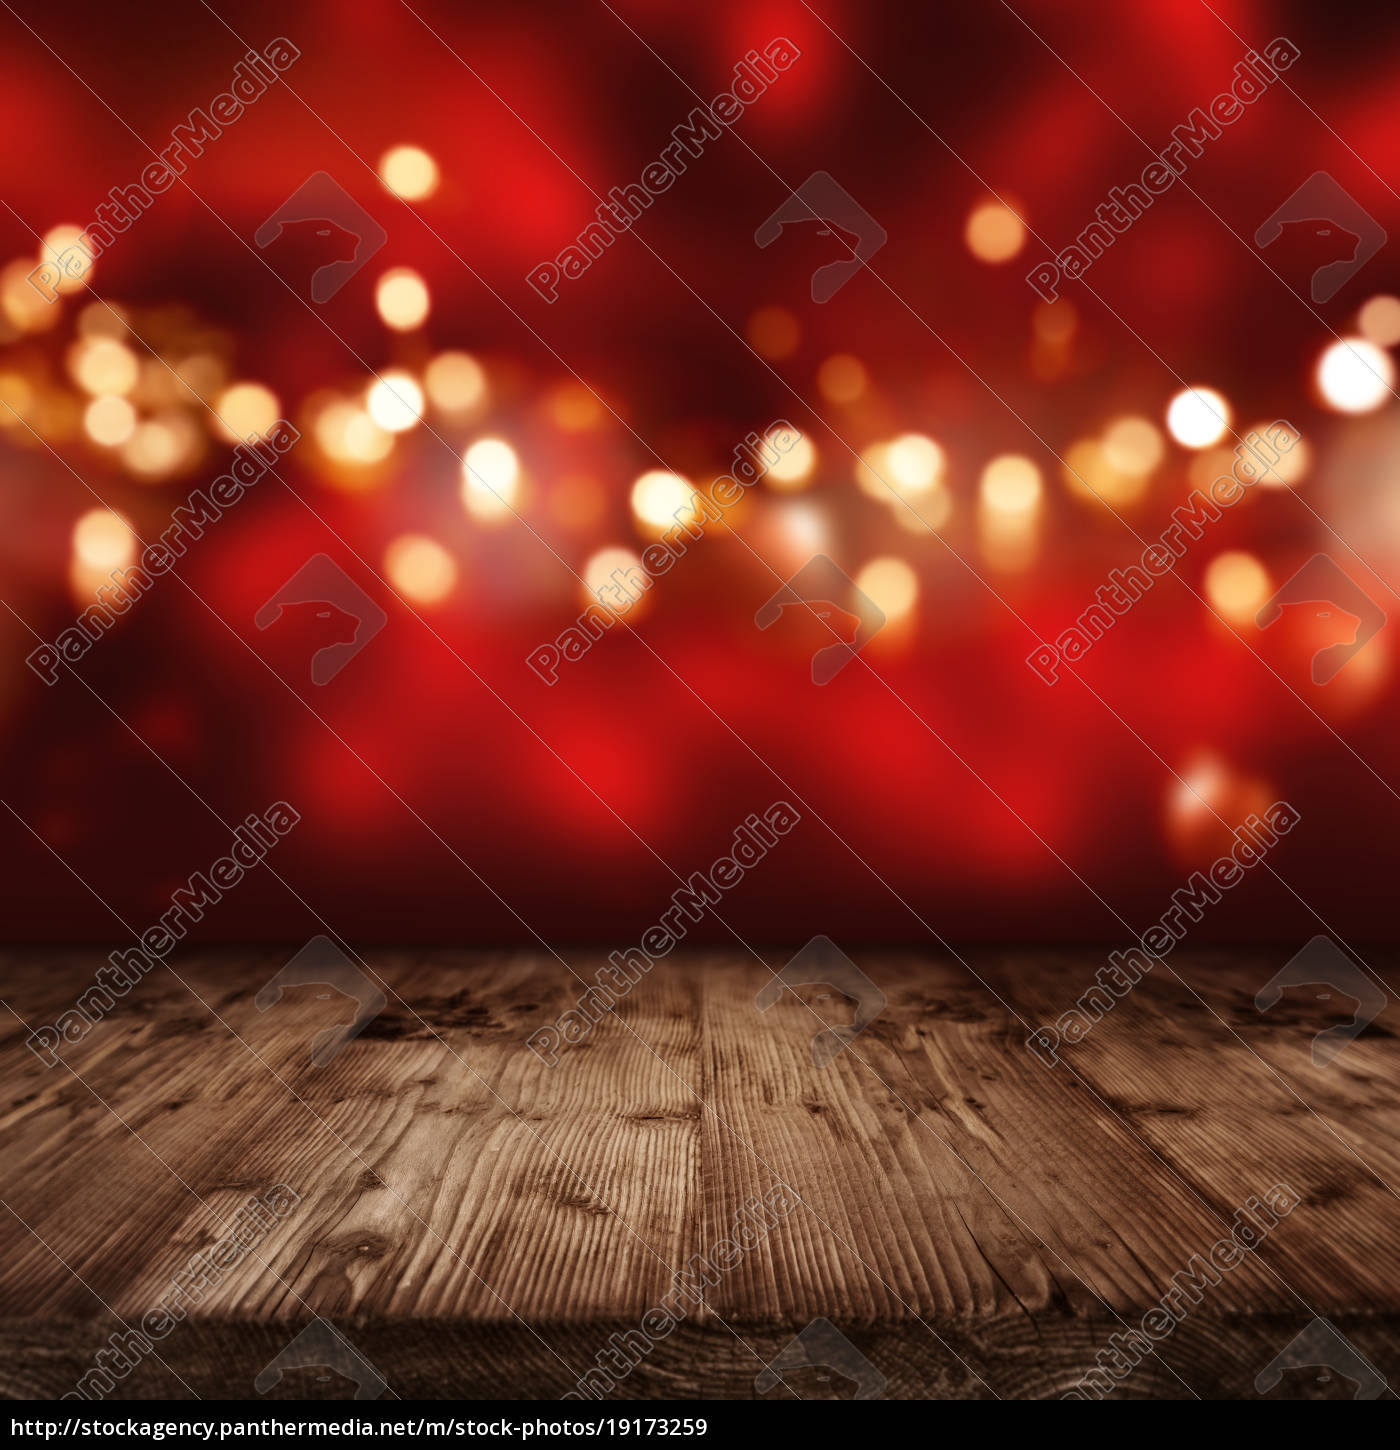 red, background, with, golden, lights - 19173259